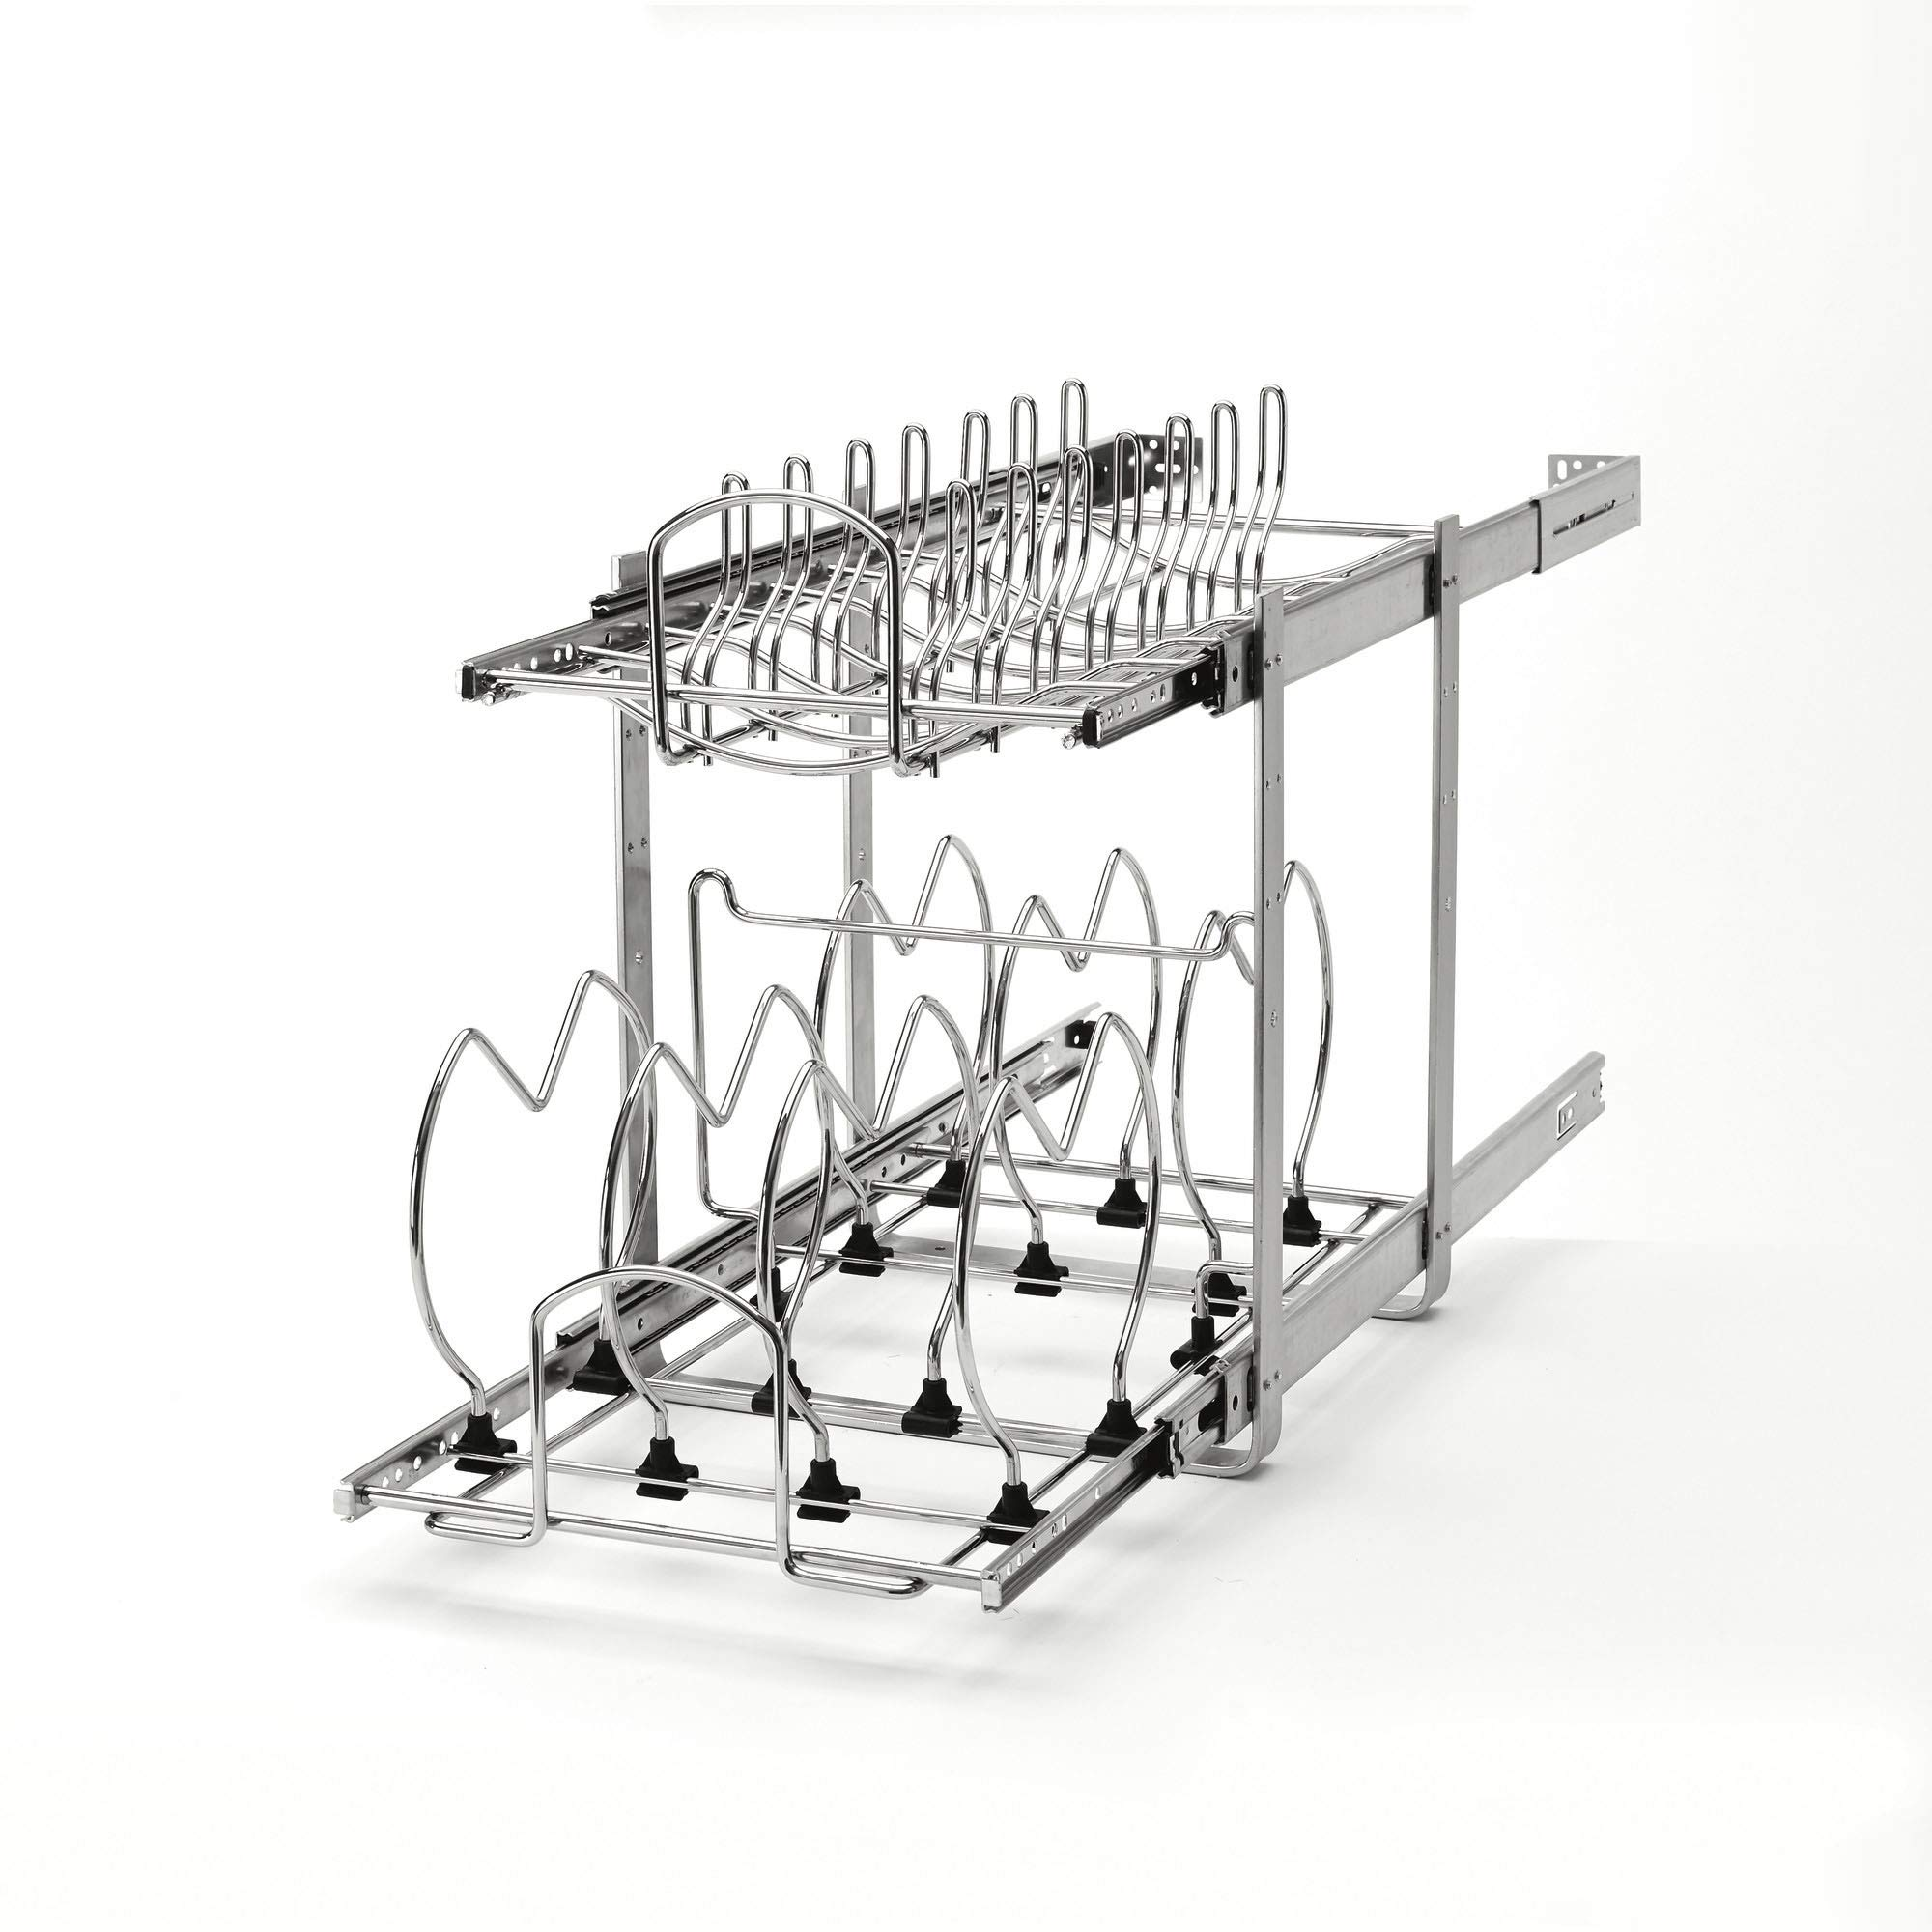 Rev-A-Shelf 5CW2-1222-CR Base Cabinet Easy Pullout 2 Tier Cookware Organizer by Rev-A-Shelf